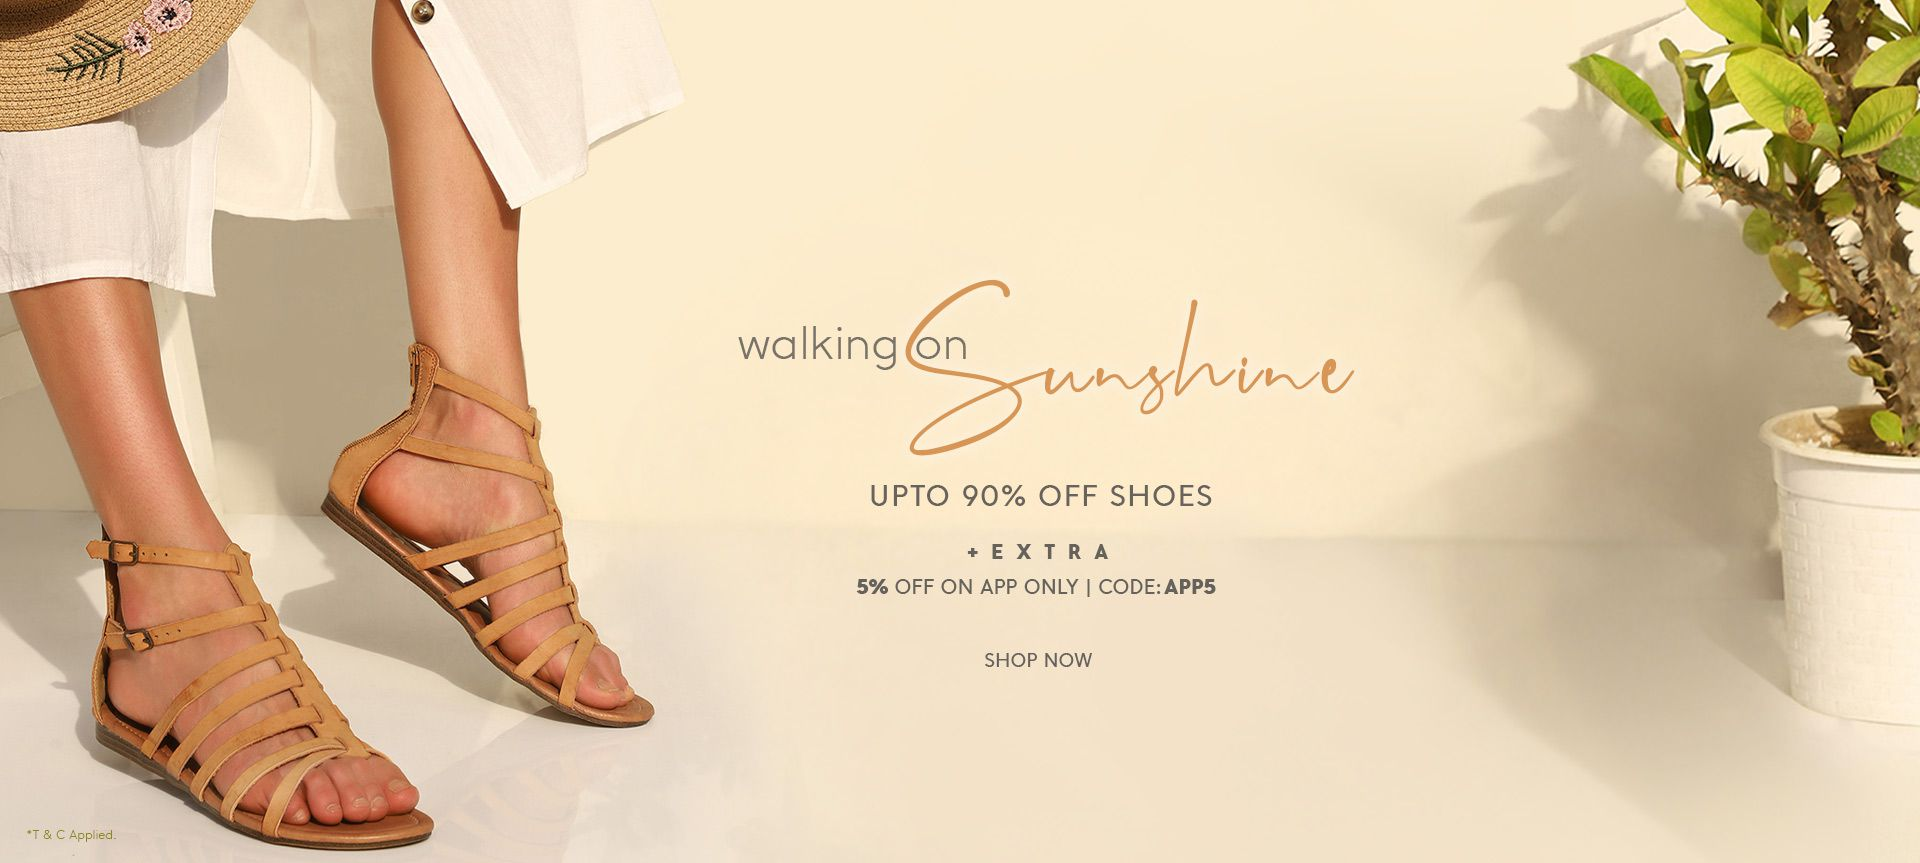 FLAT 85% OFF ON SHOES